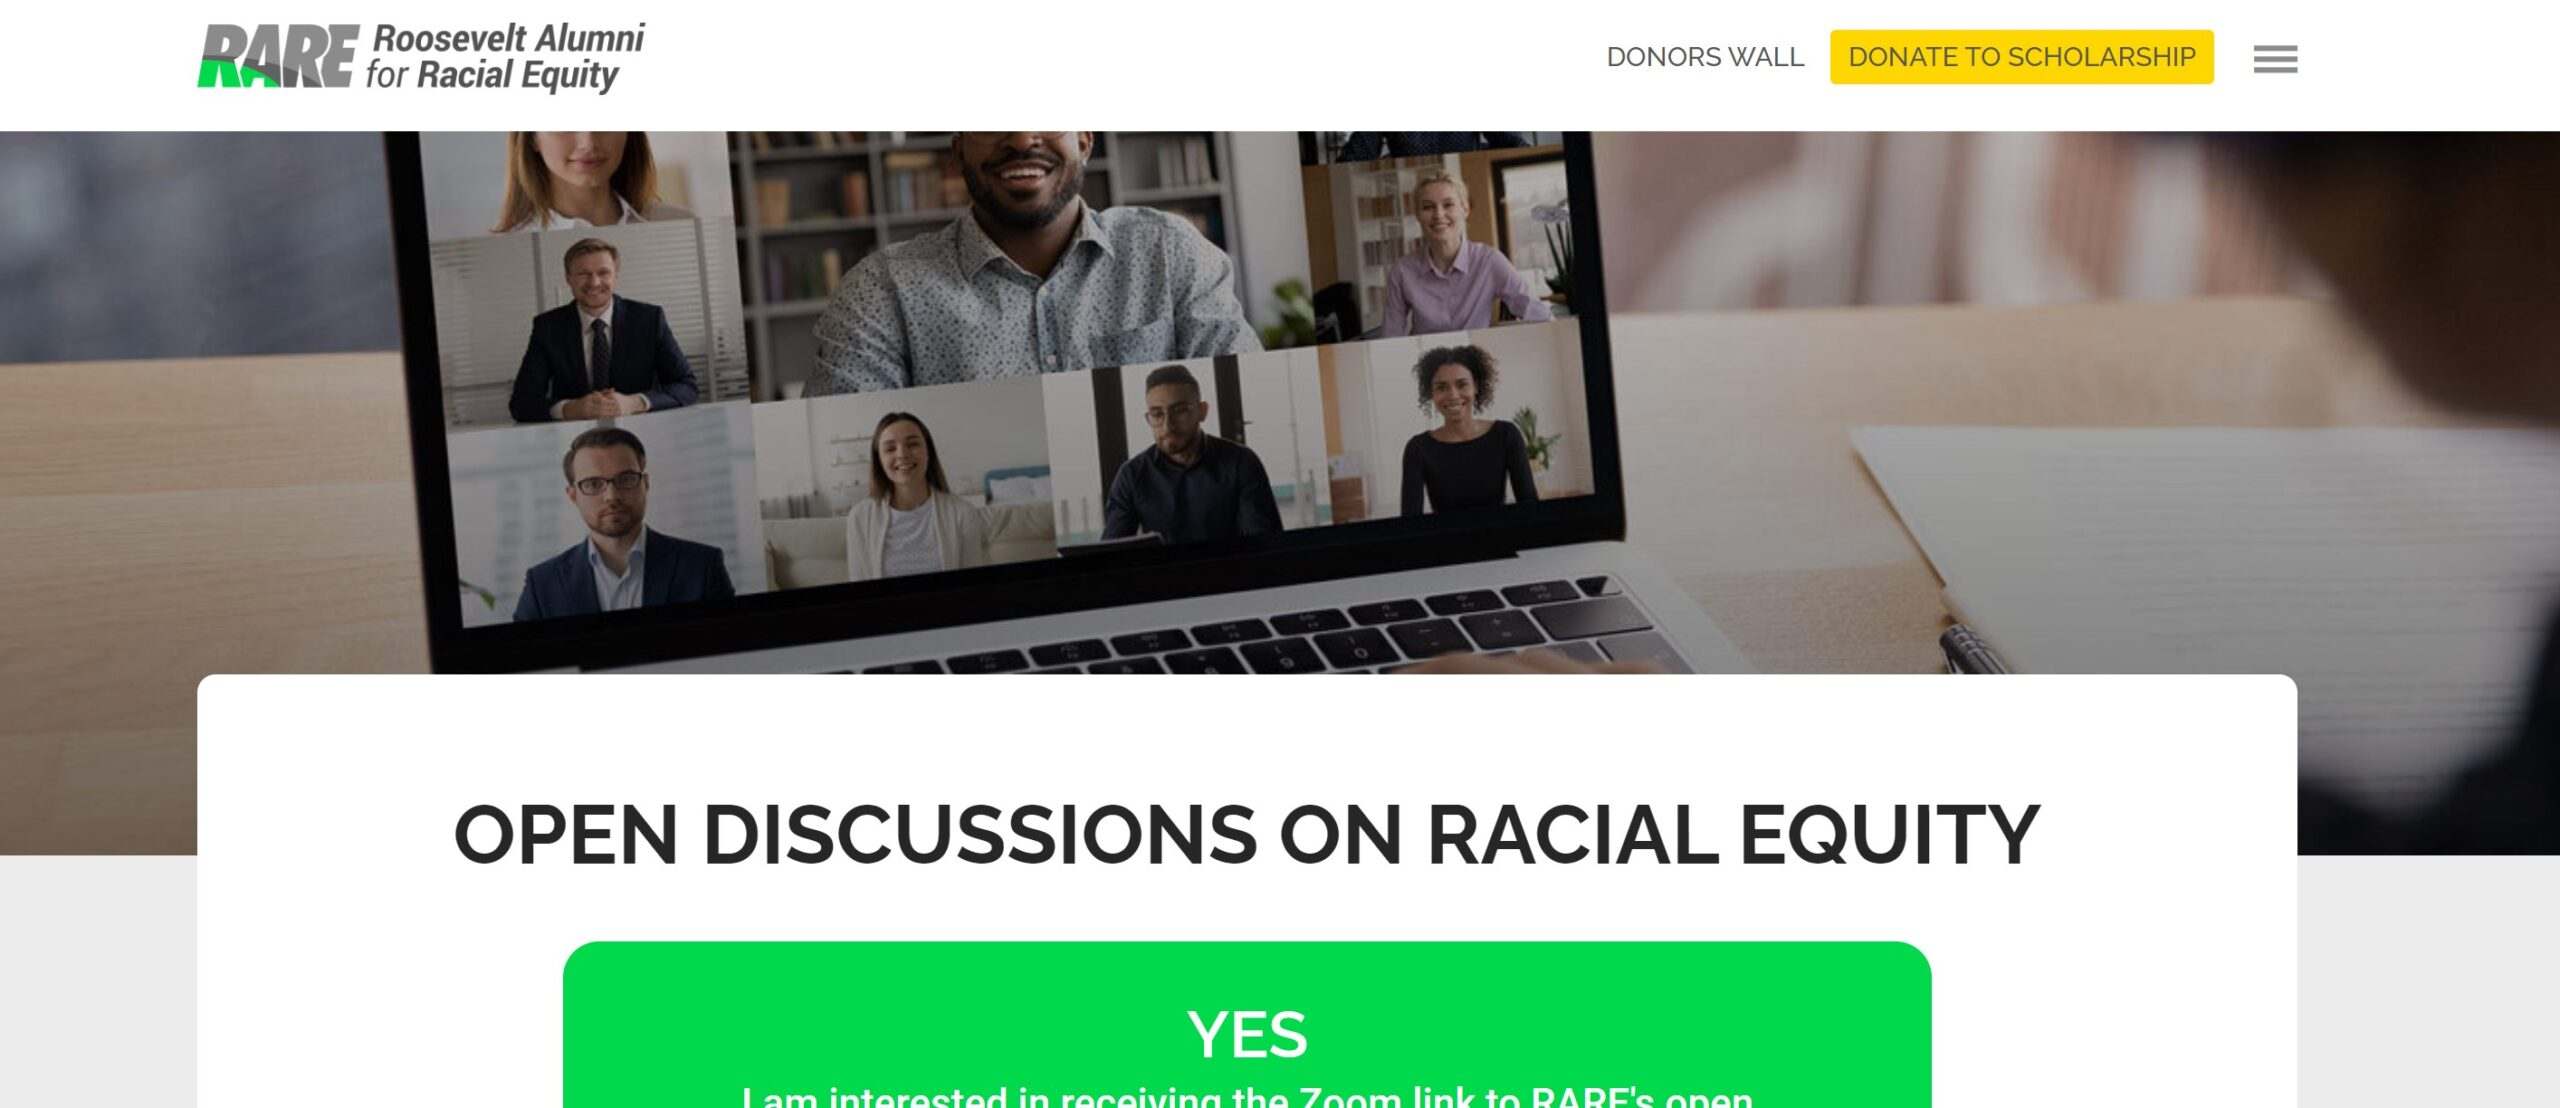 New Web Page Details Open Discussions on Race